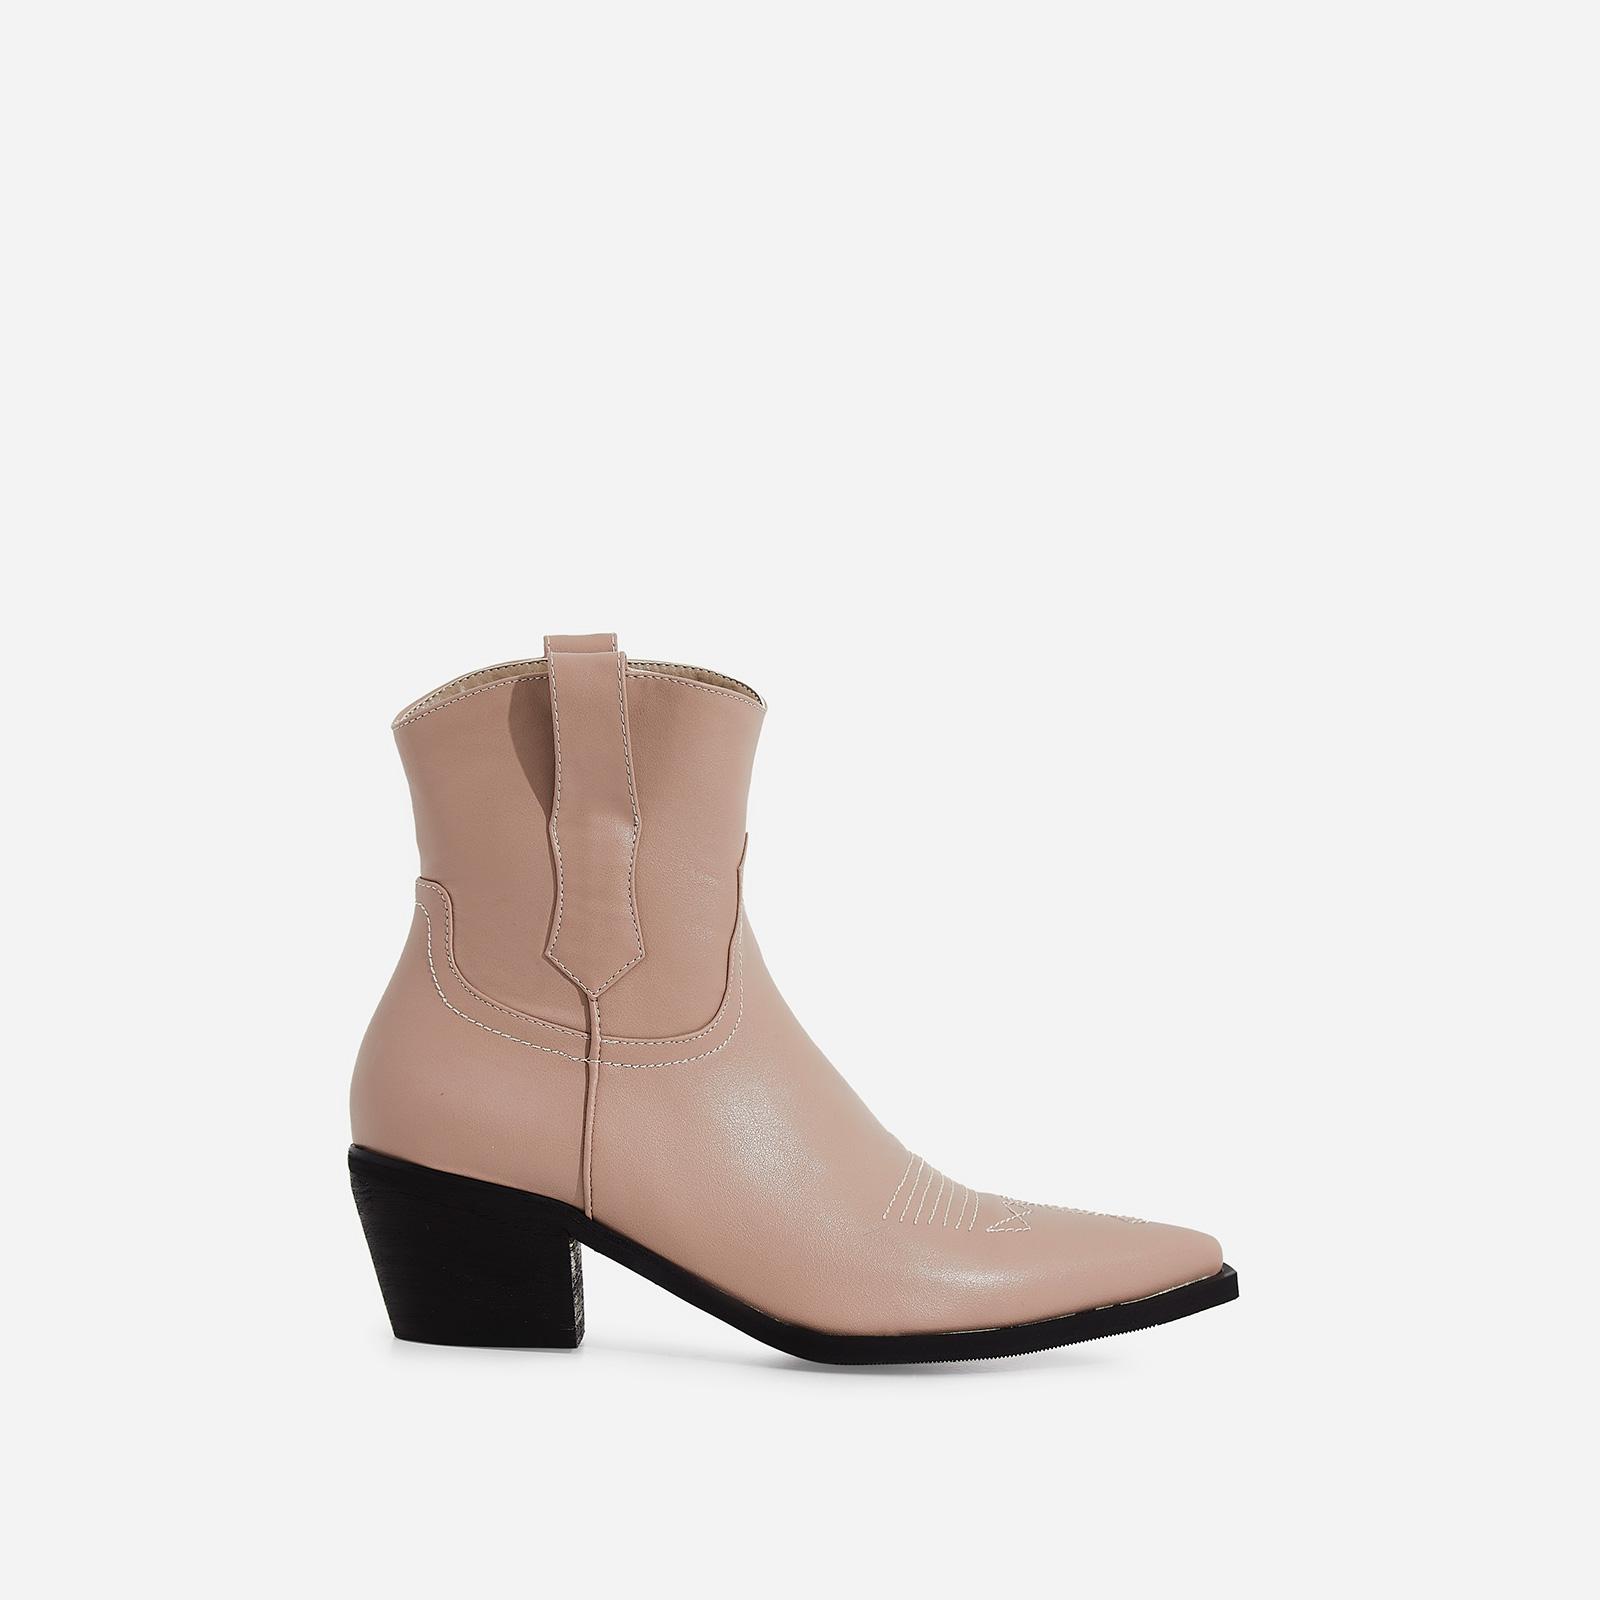 Reema Western Ankle Boot In Nude Faux Leather